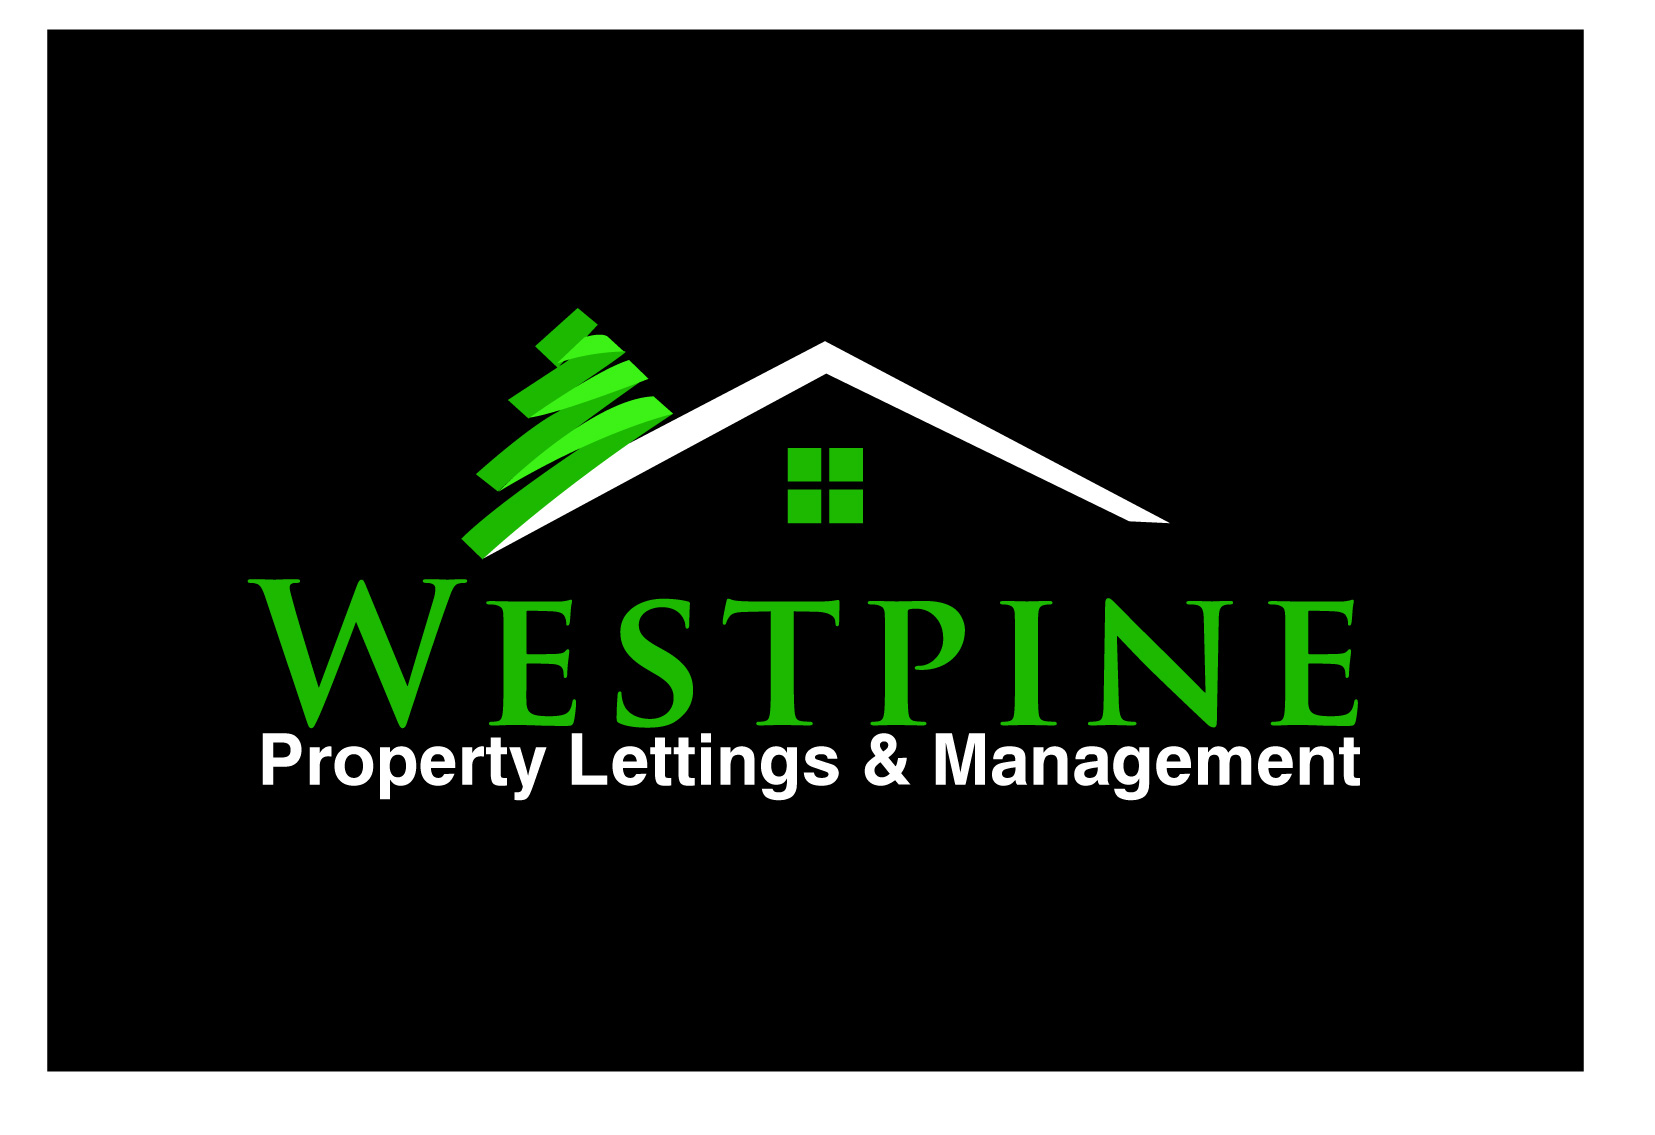 Westpine Property Lettings & Management logo